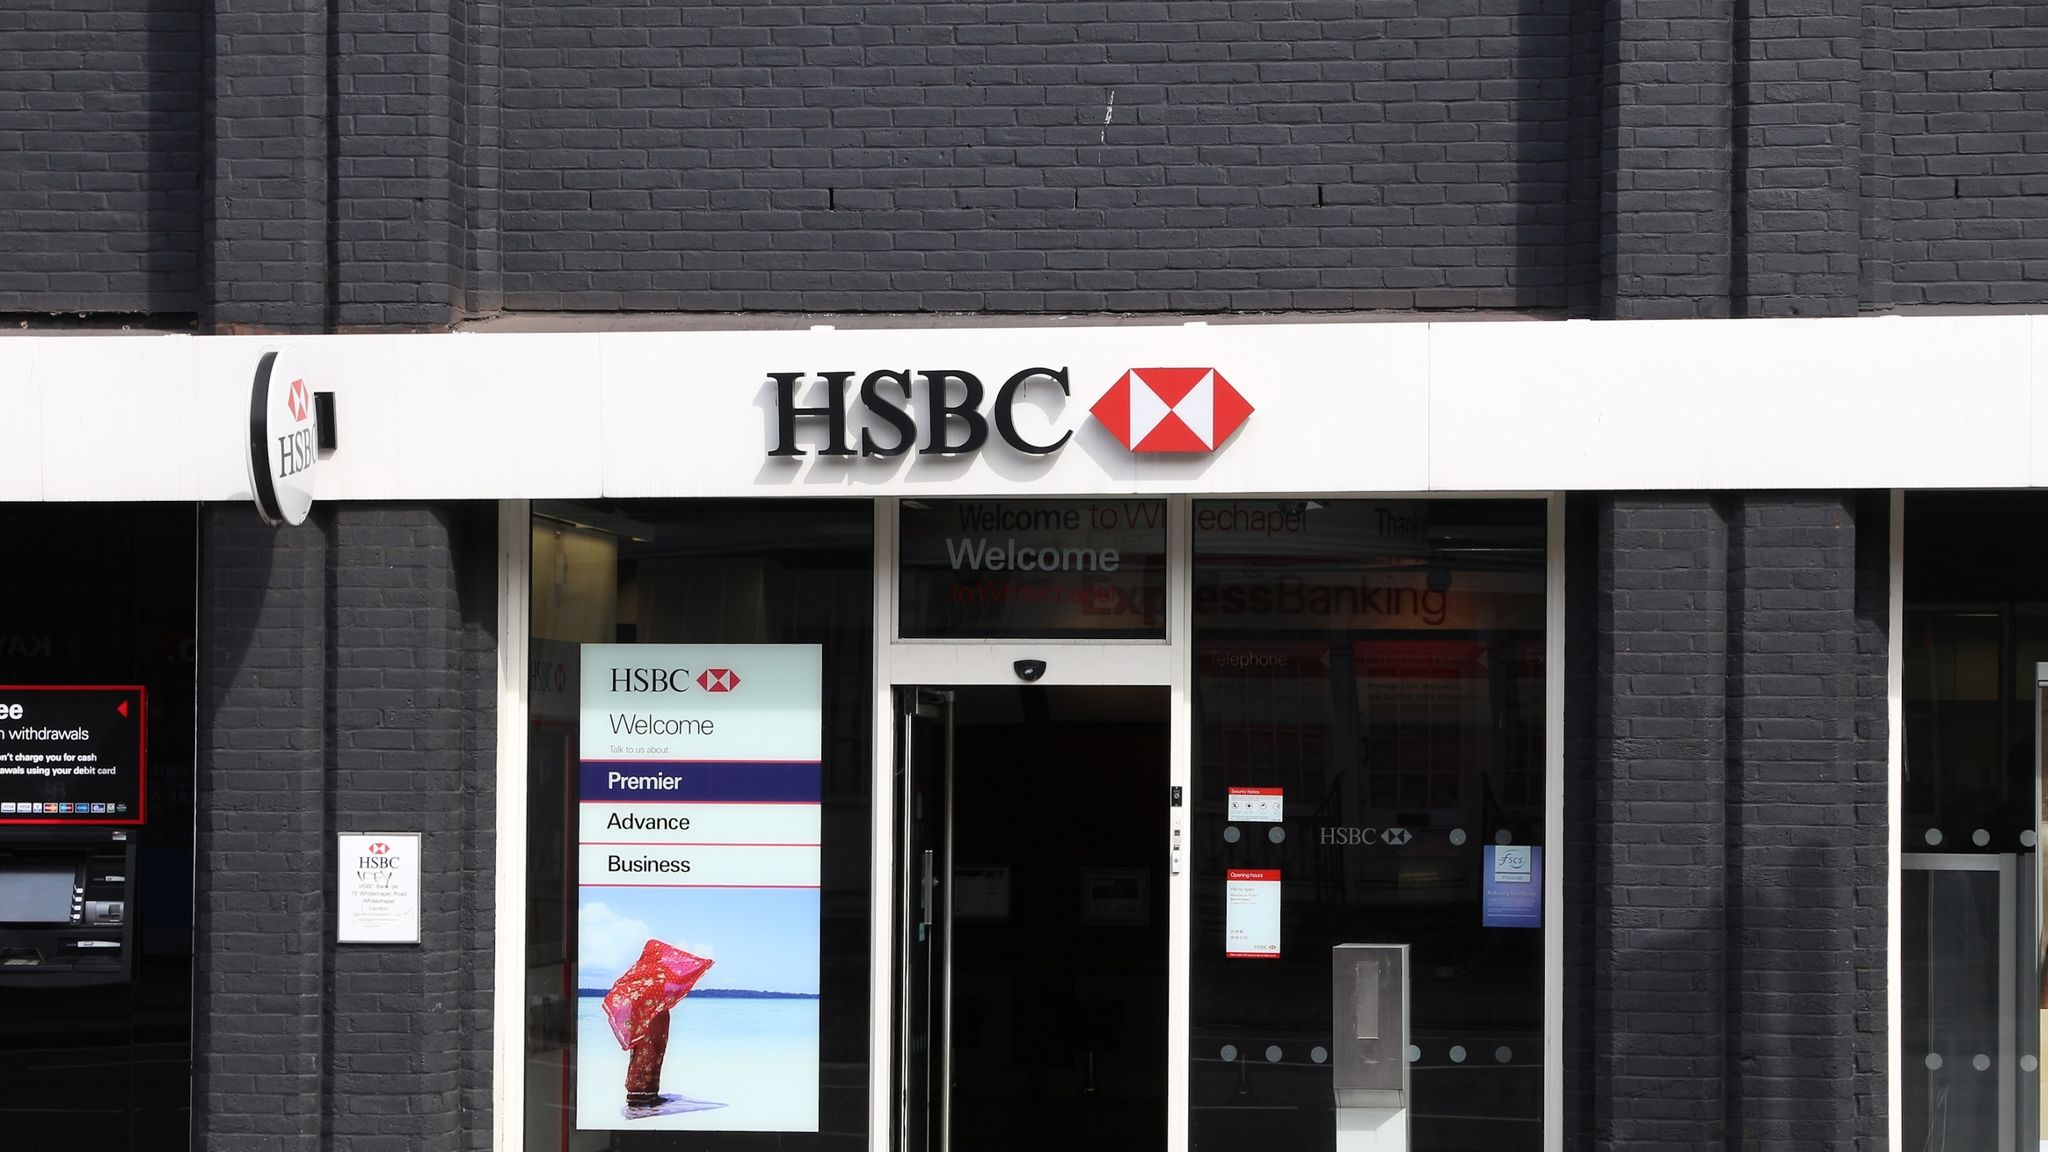 HSBC mobile banking service down as MPs launch investigation